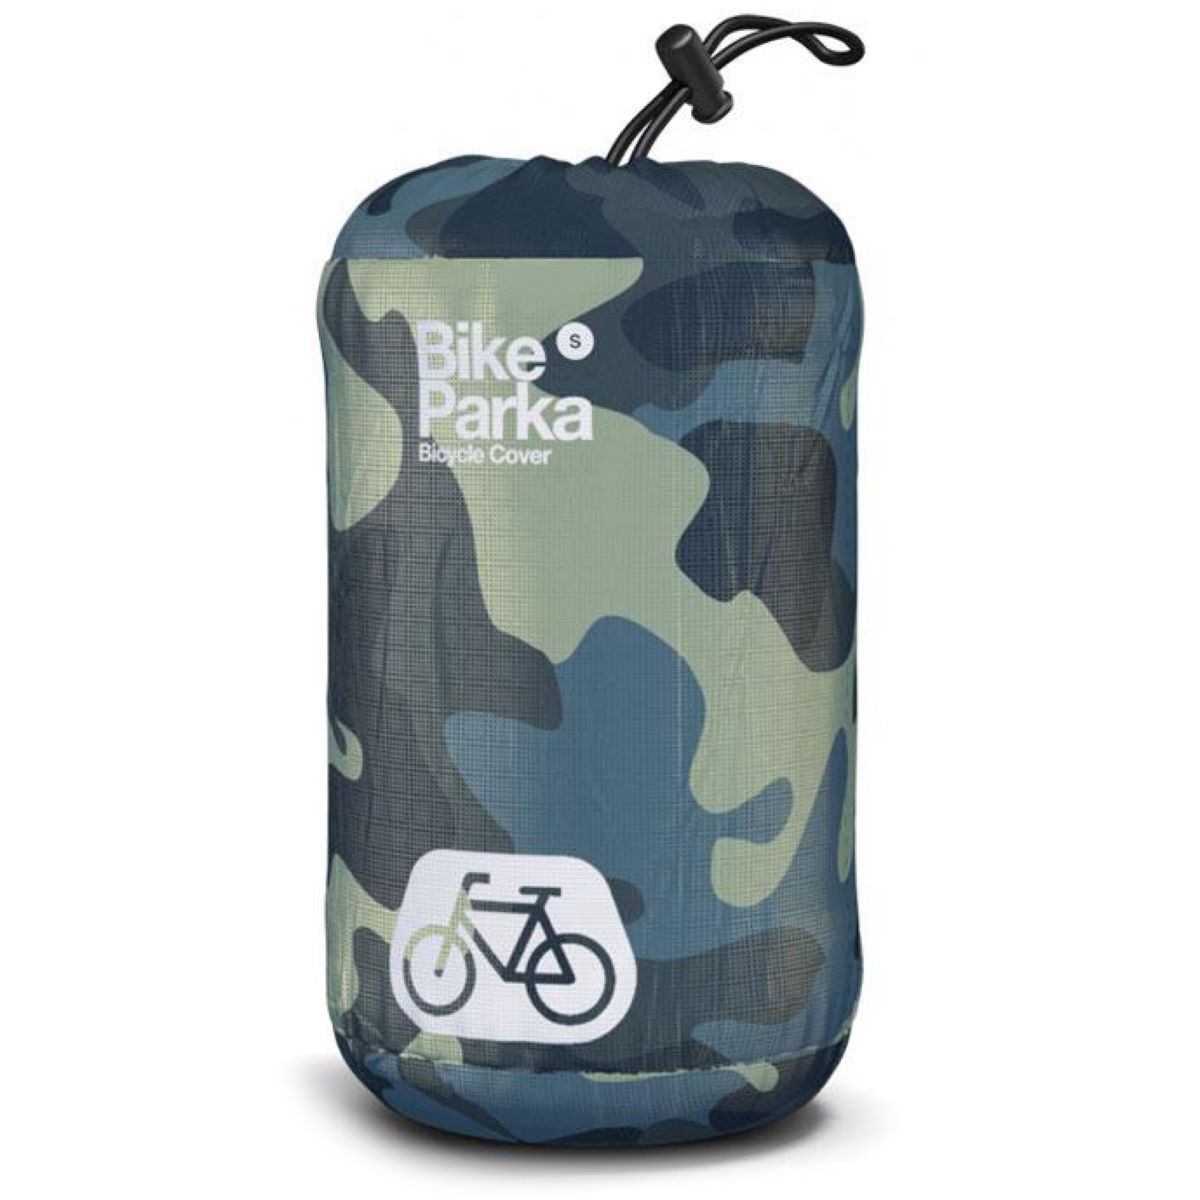 BikeParka BikeParka The Urban Bike Cover   Bike Covers